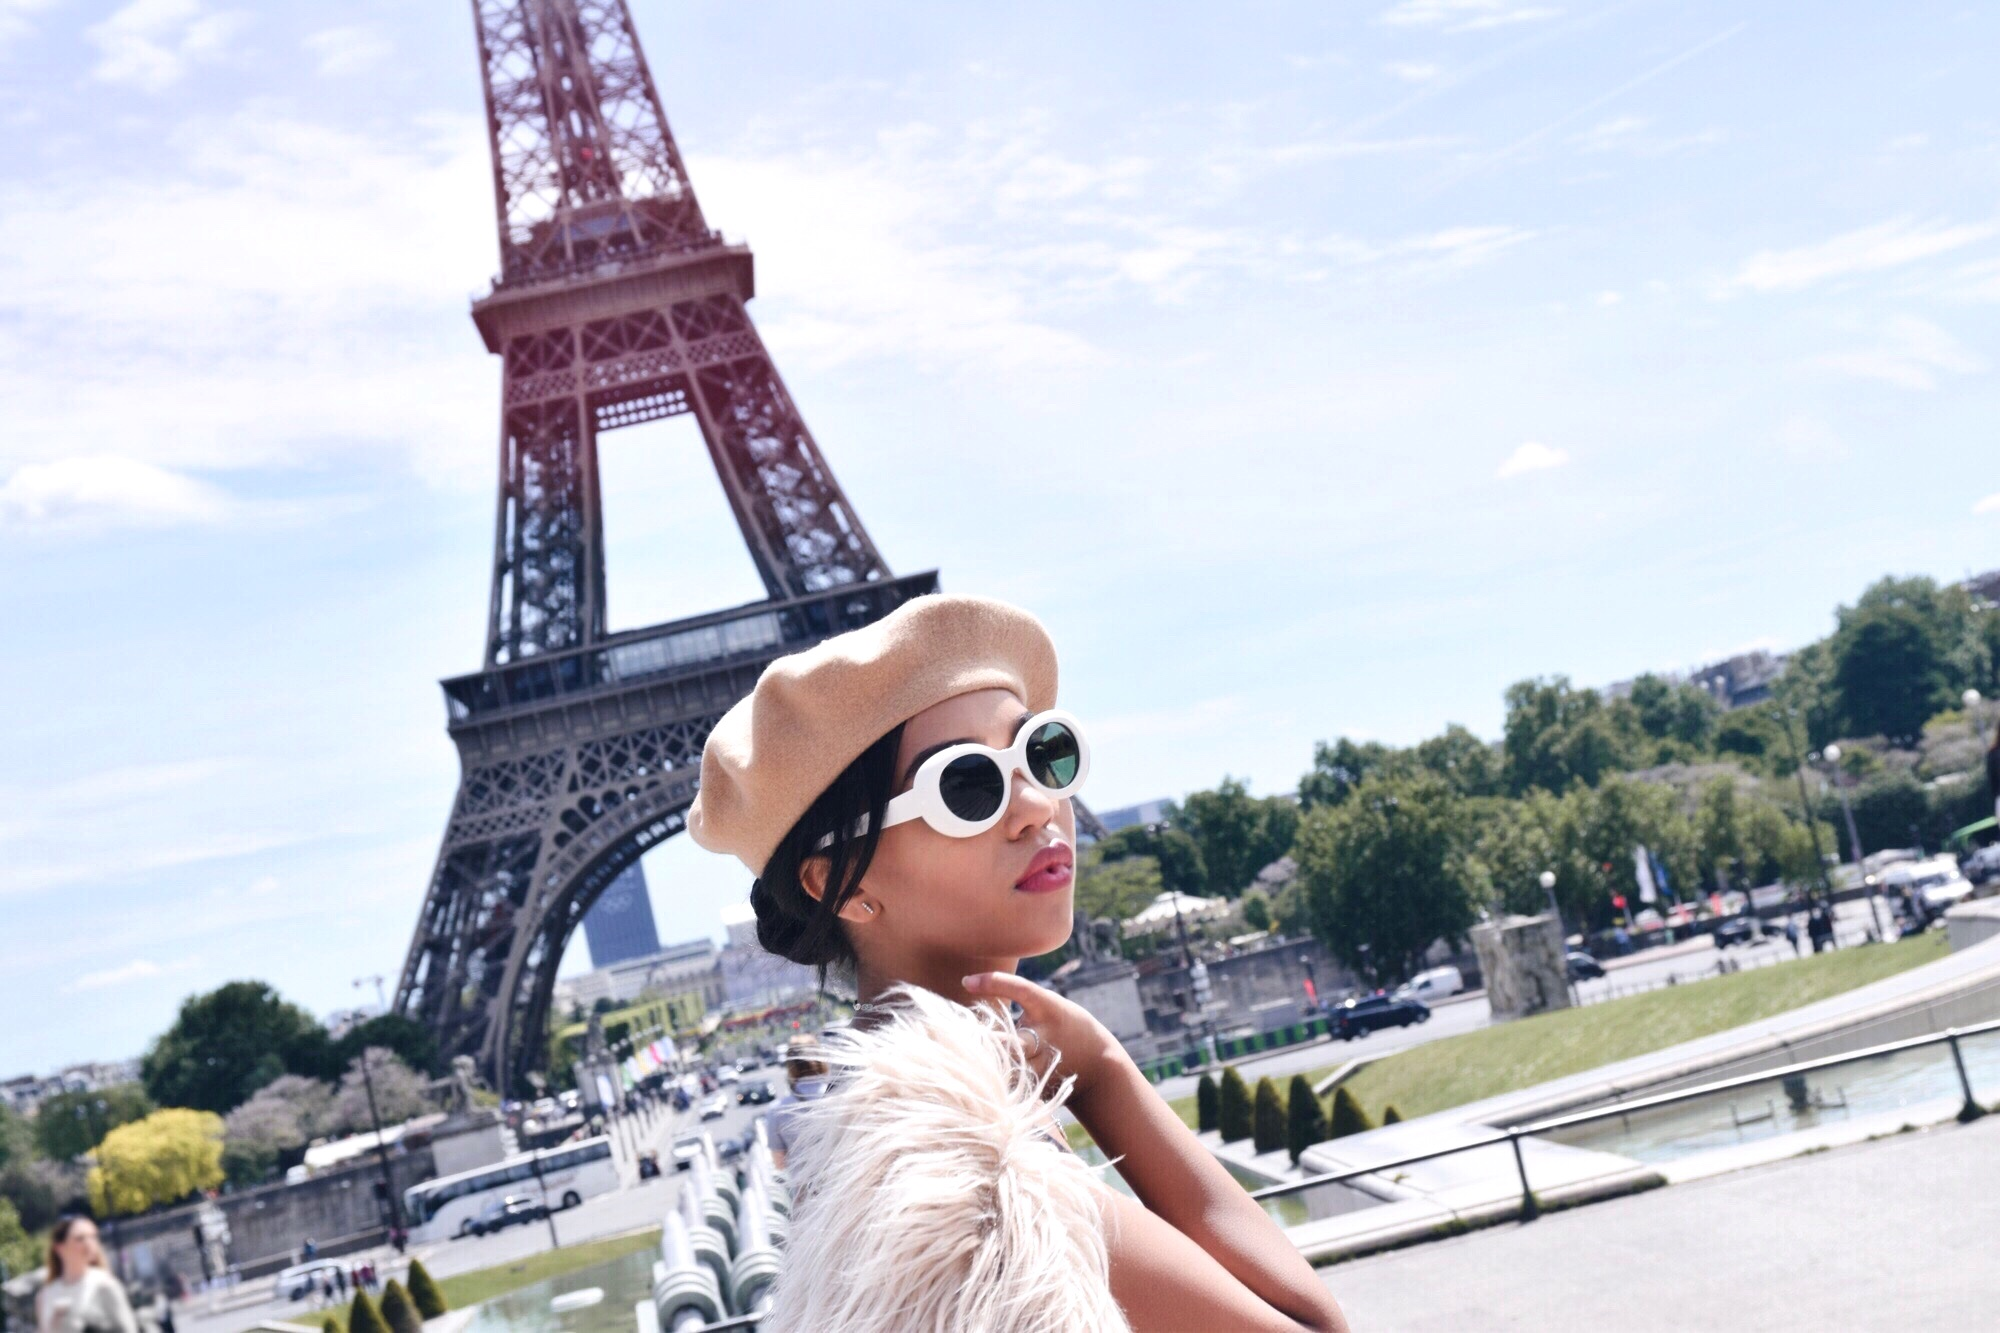 Jardin Du Trocadero // Paris Travel Diary // L'Ecole Des Femme Dress // Lioness Faux Fur Coat // Christian Louboutin Black Suede Pumps // Acne Studios White Mustang Sunglasses // Beige Beret and Parisian Style // Chanel Classic Flap Bag // Los Angeles Fashion Blogger Daphne Blunt: To Style, With Love